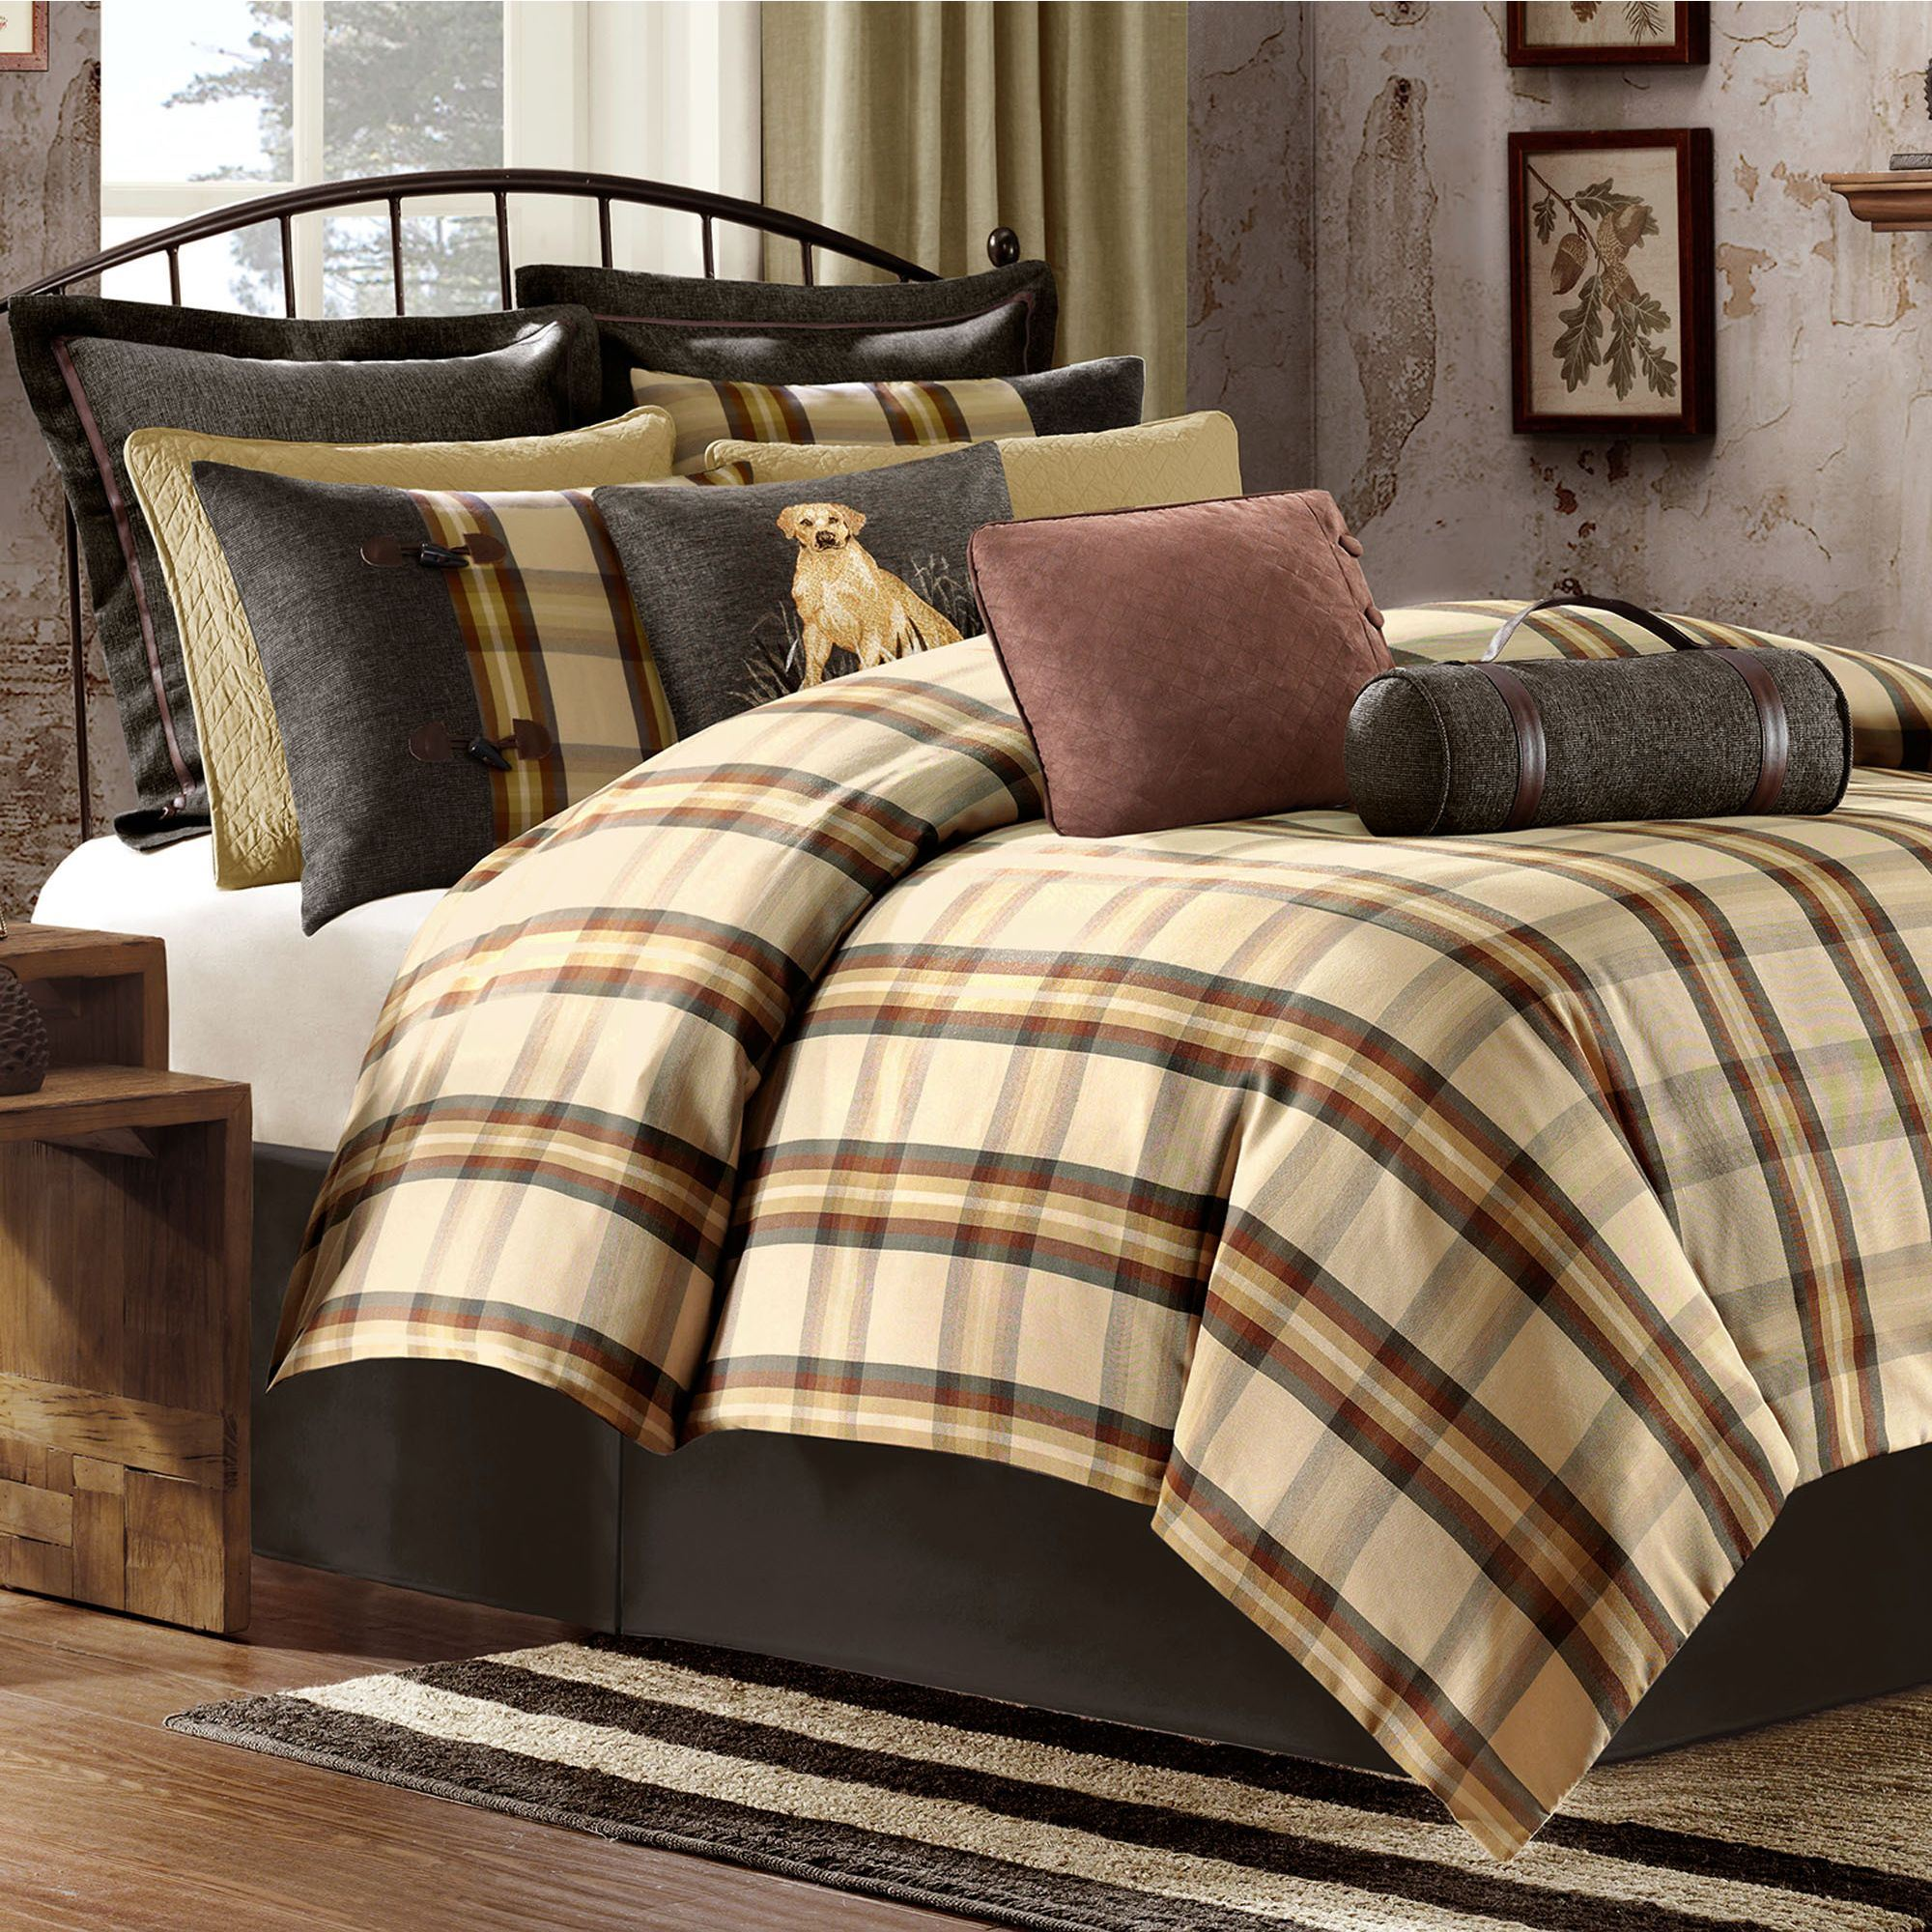 Astounding plaid comforter with rugs and wooden floor plus headboard and sidetable also pillows